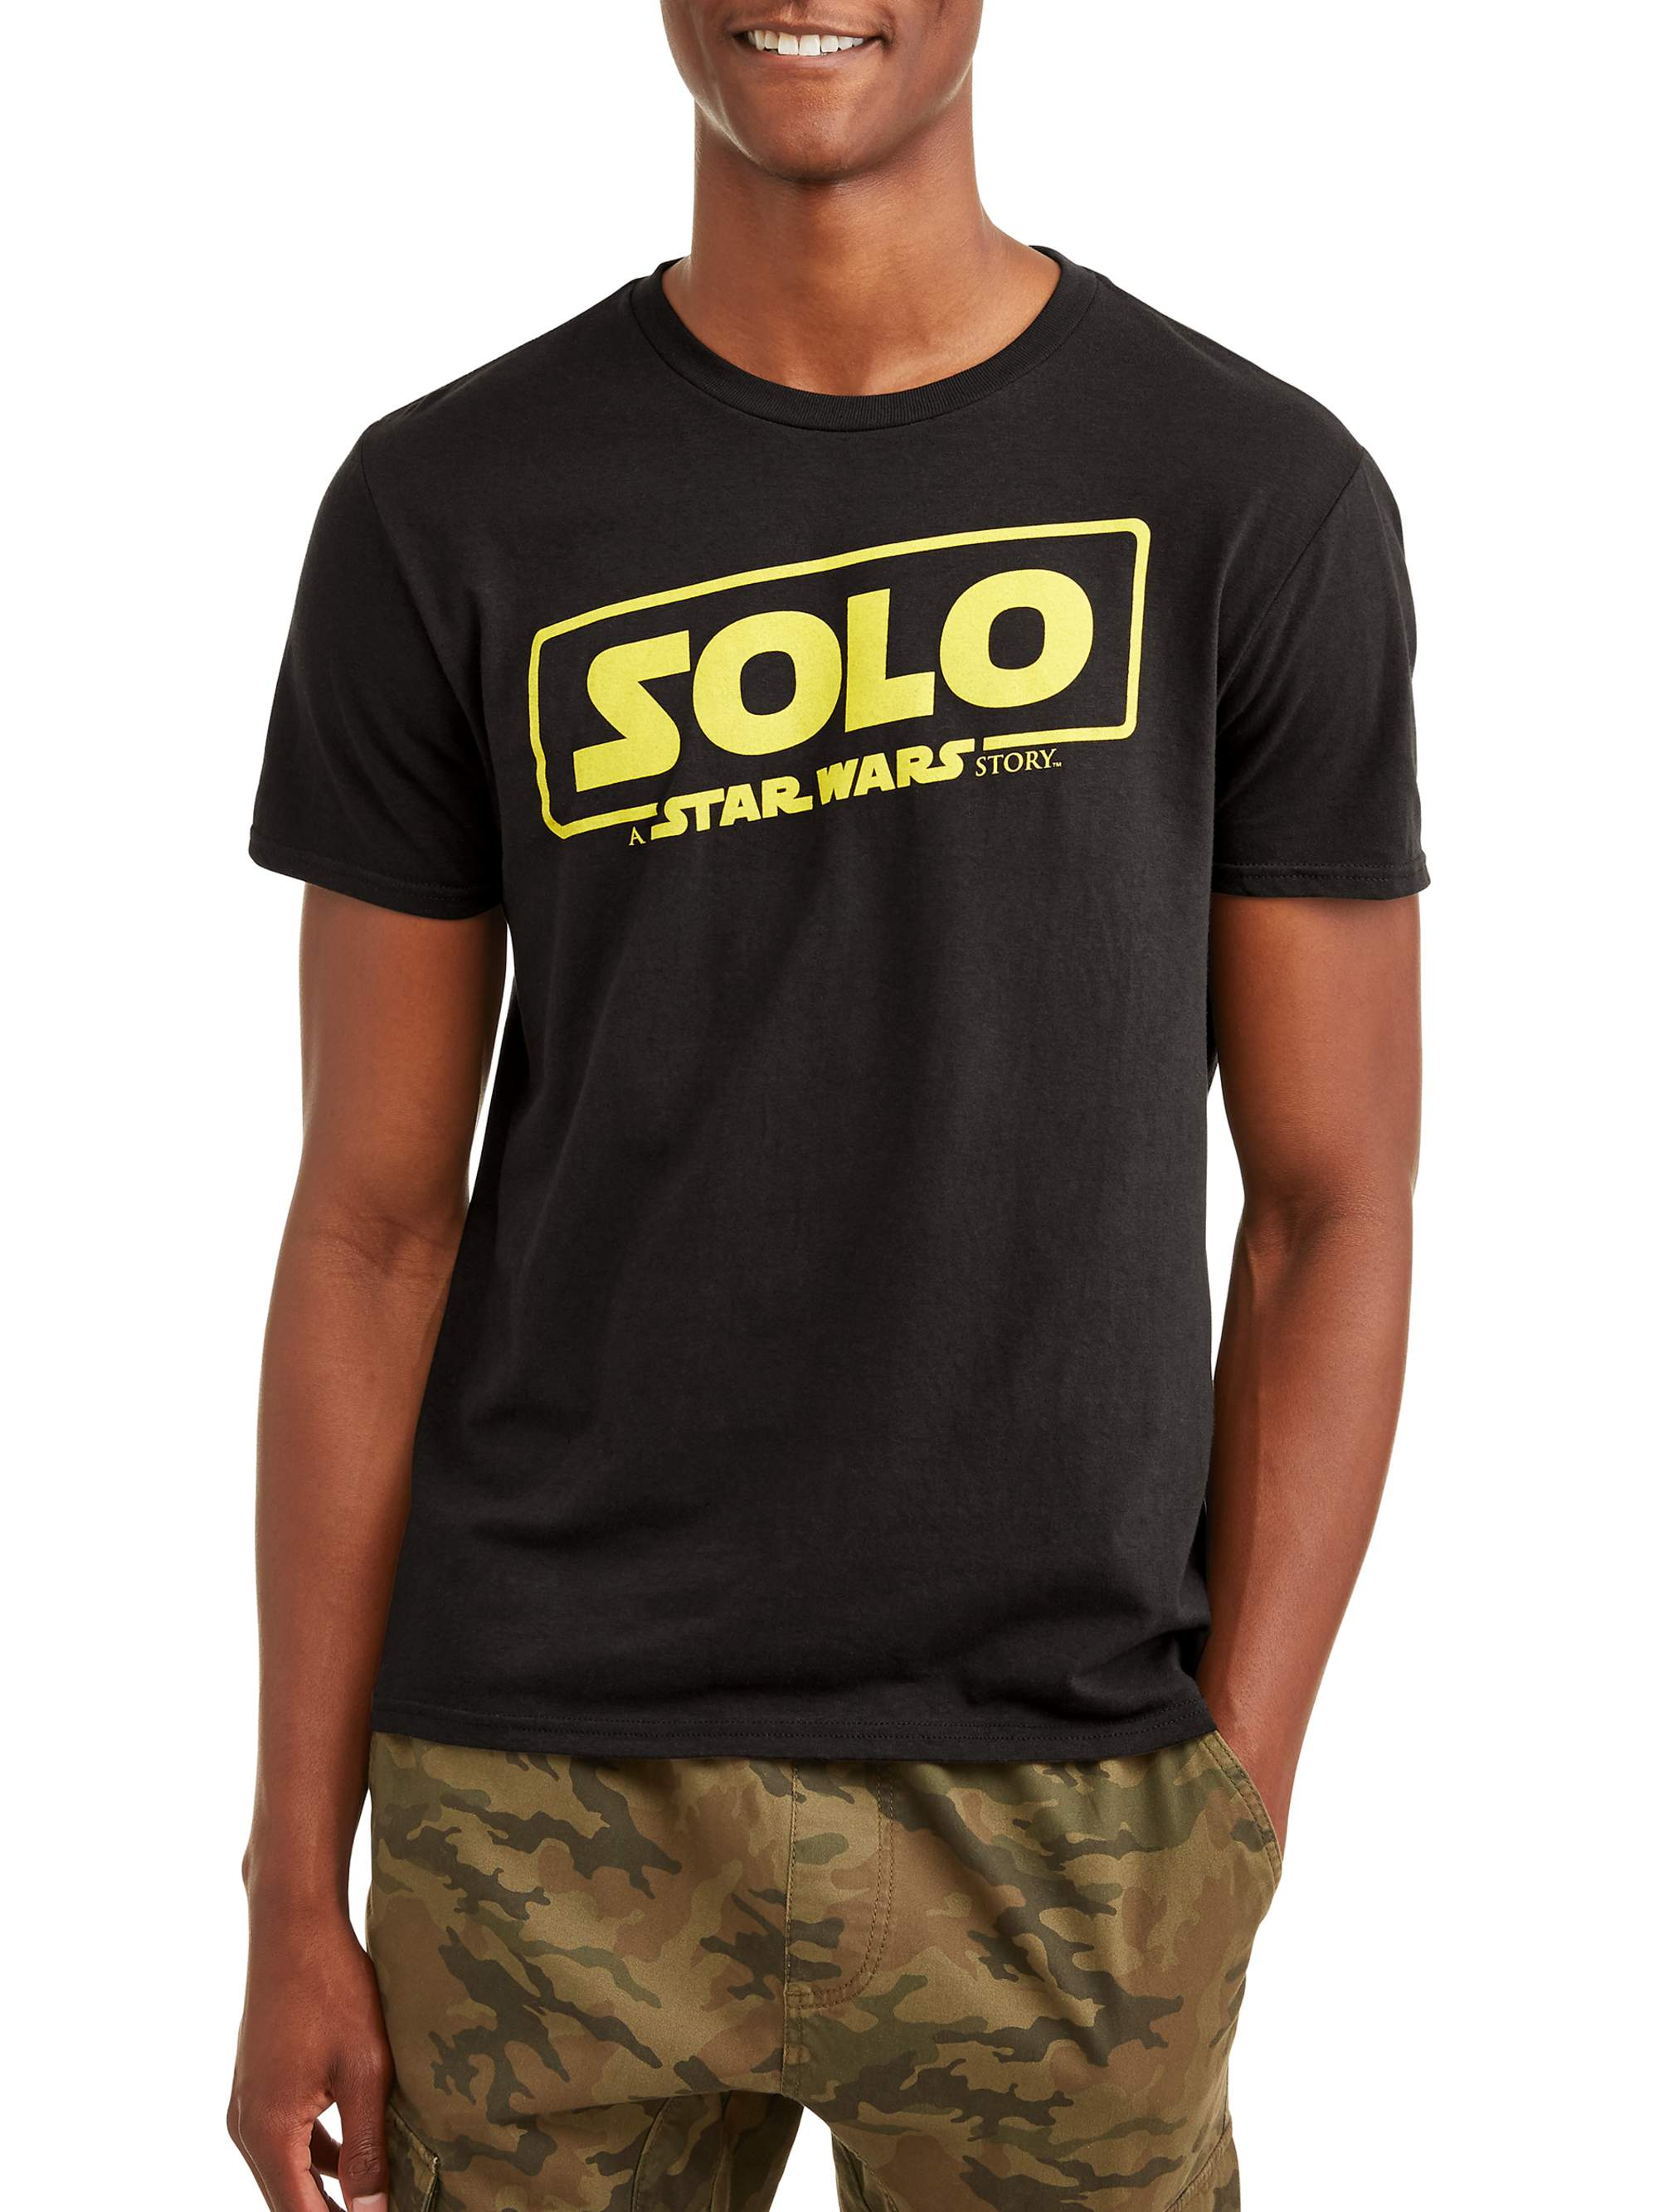 Star Wars Men's Solo Movie Logo Short Sleeve Graphic T-Shirt, up to Size 2XL